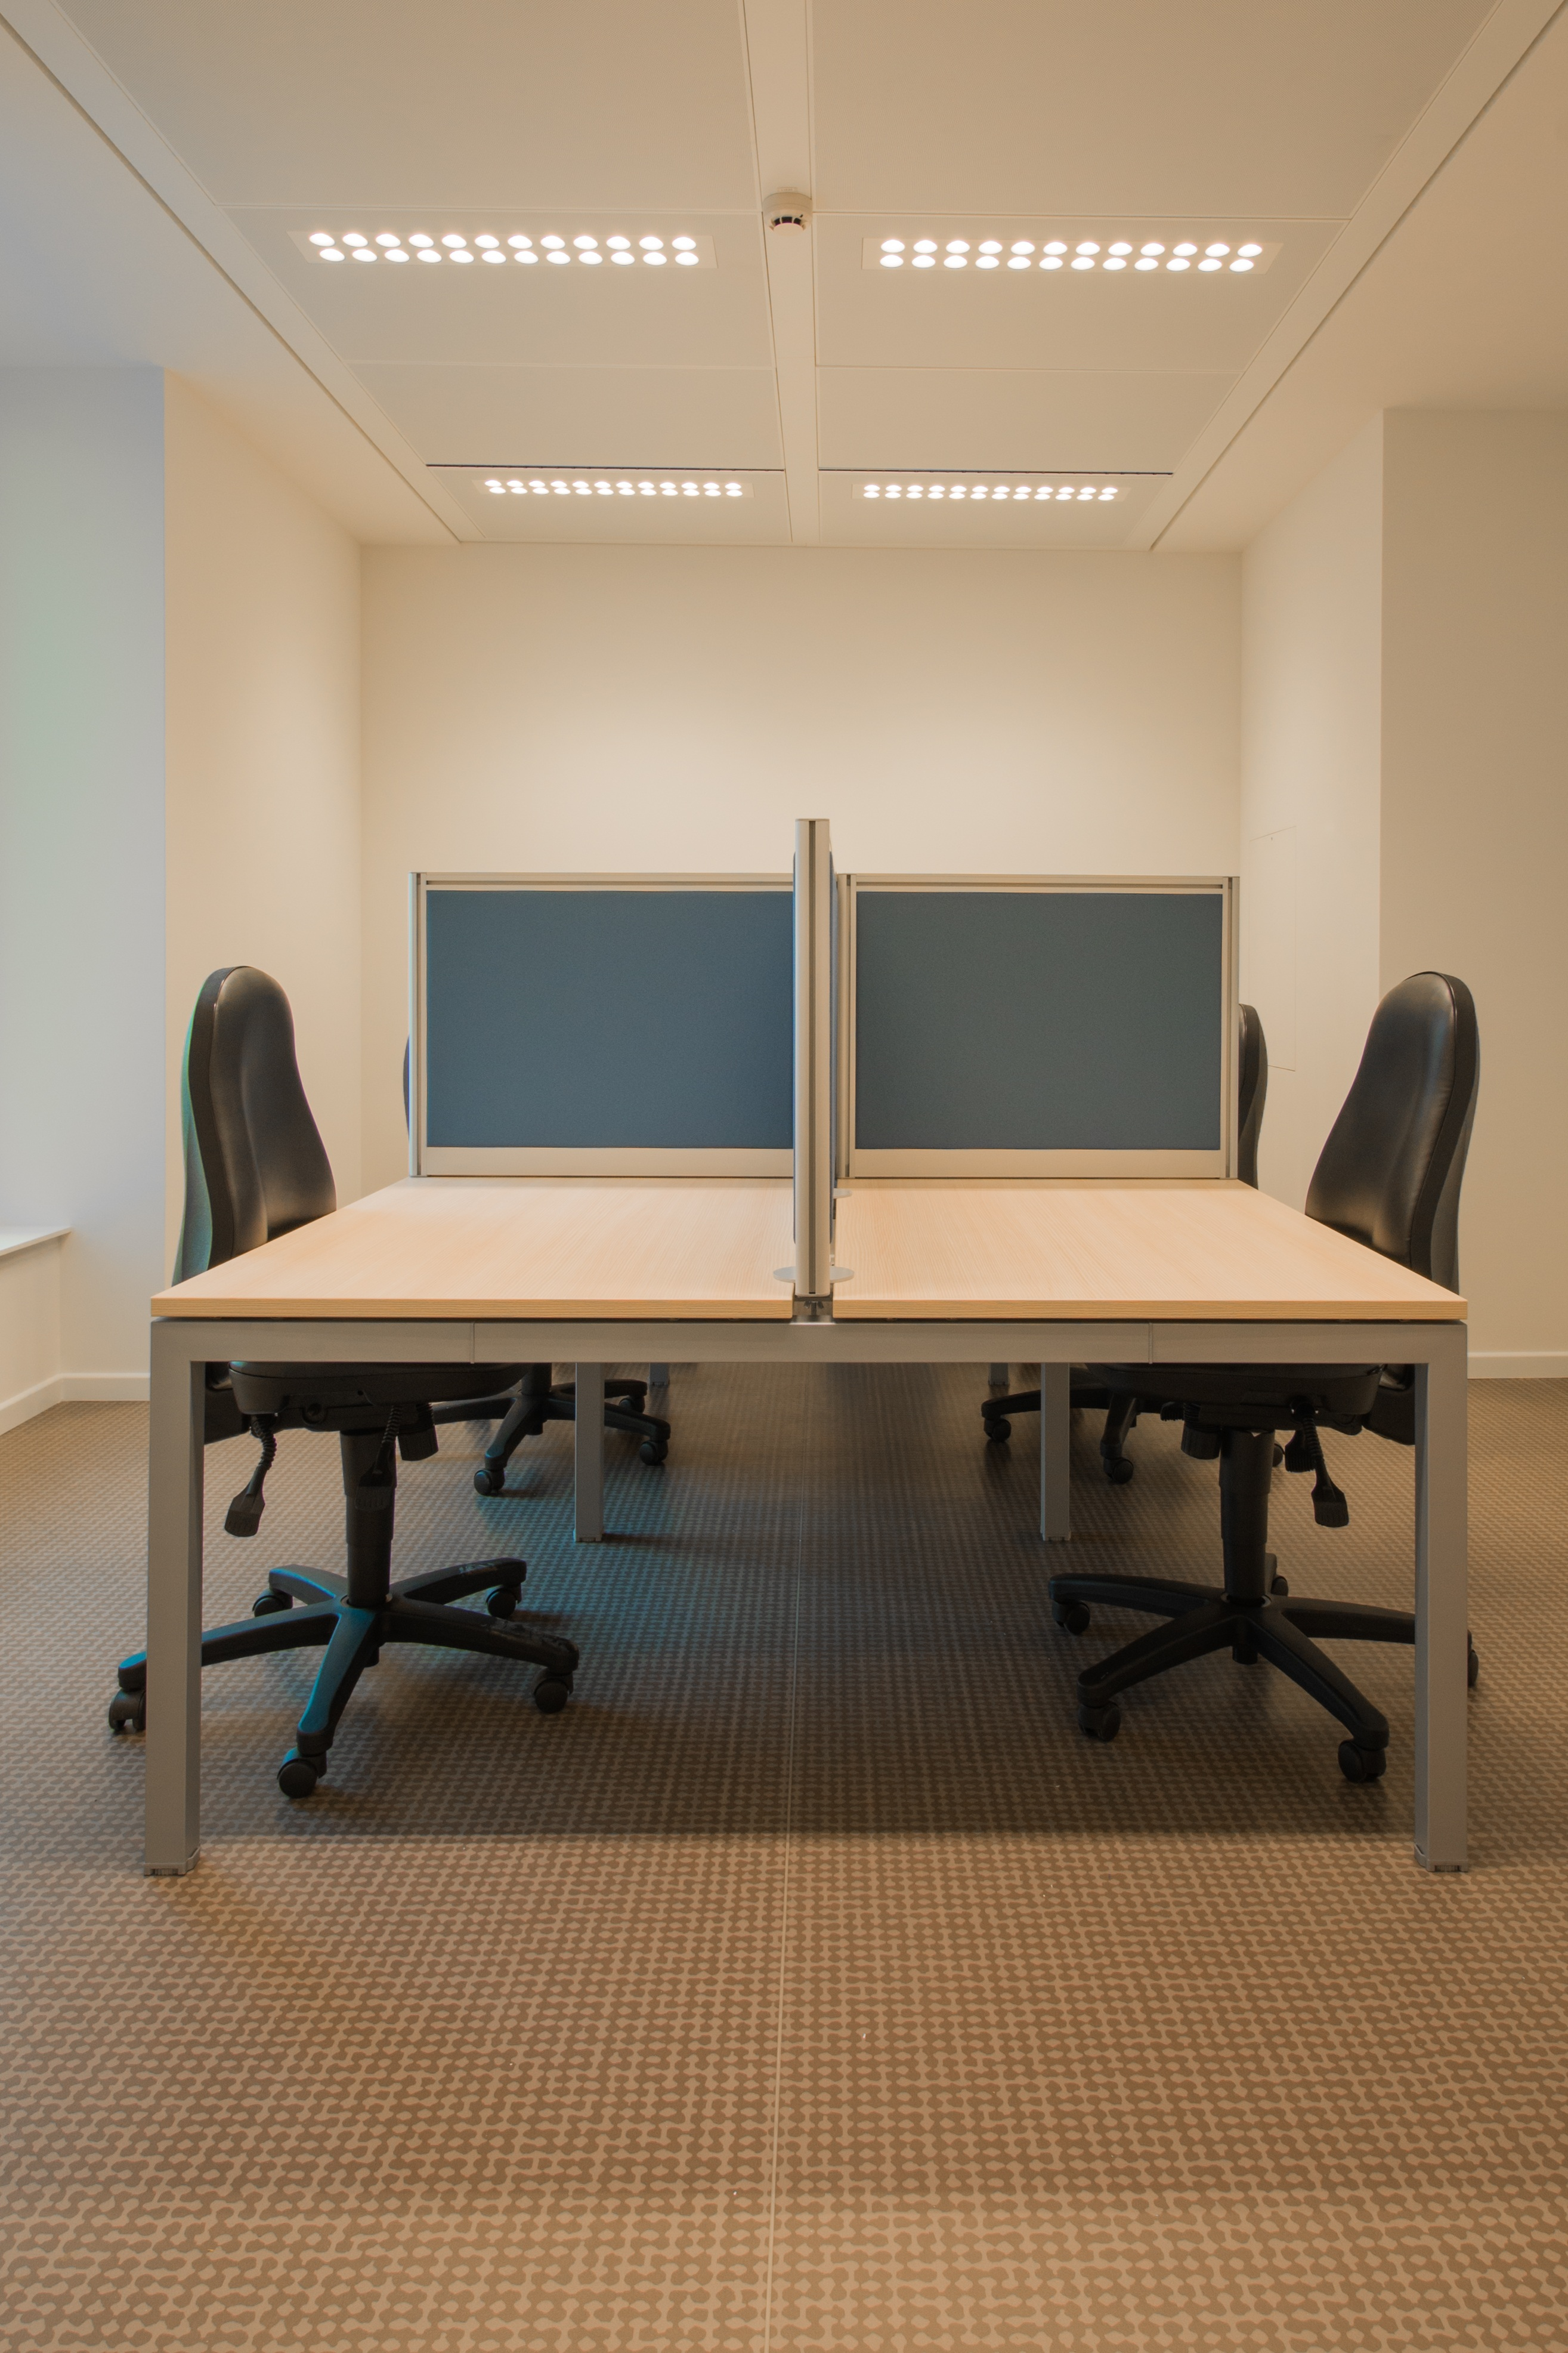 Inside Wallpaper Iphone X White Cubicle With Rolling Chairs 183 Free Stock Photo